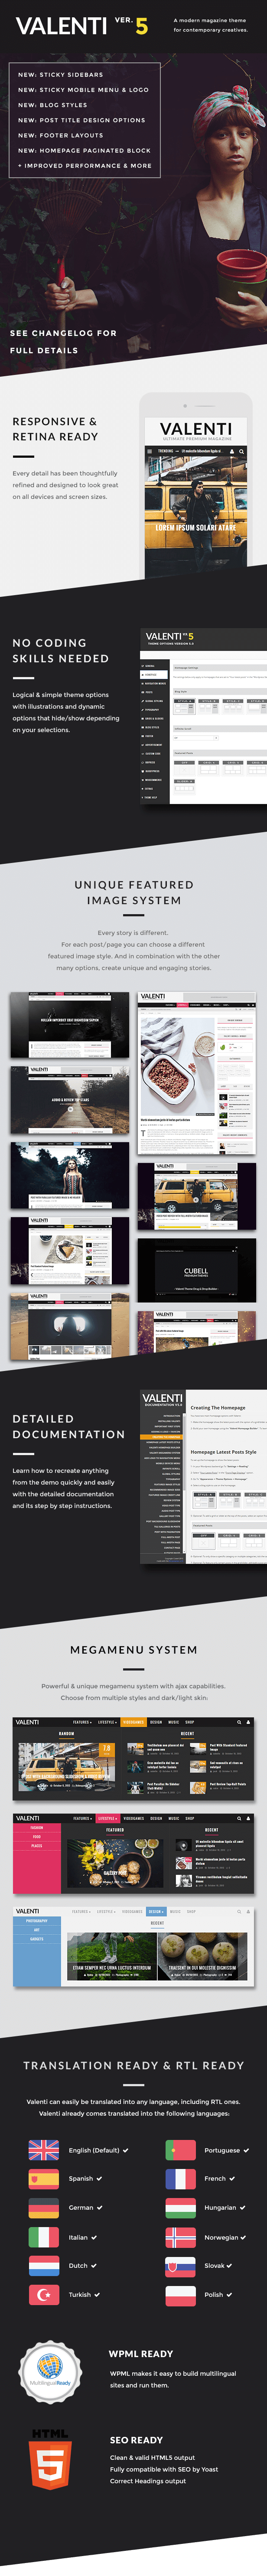 Valenti wordpress magazine theme for 2015 features